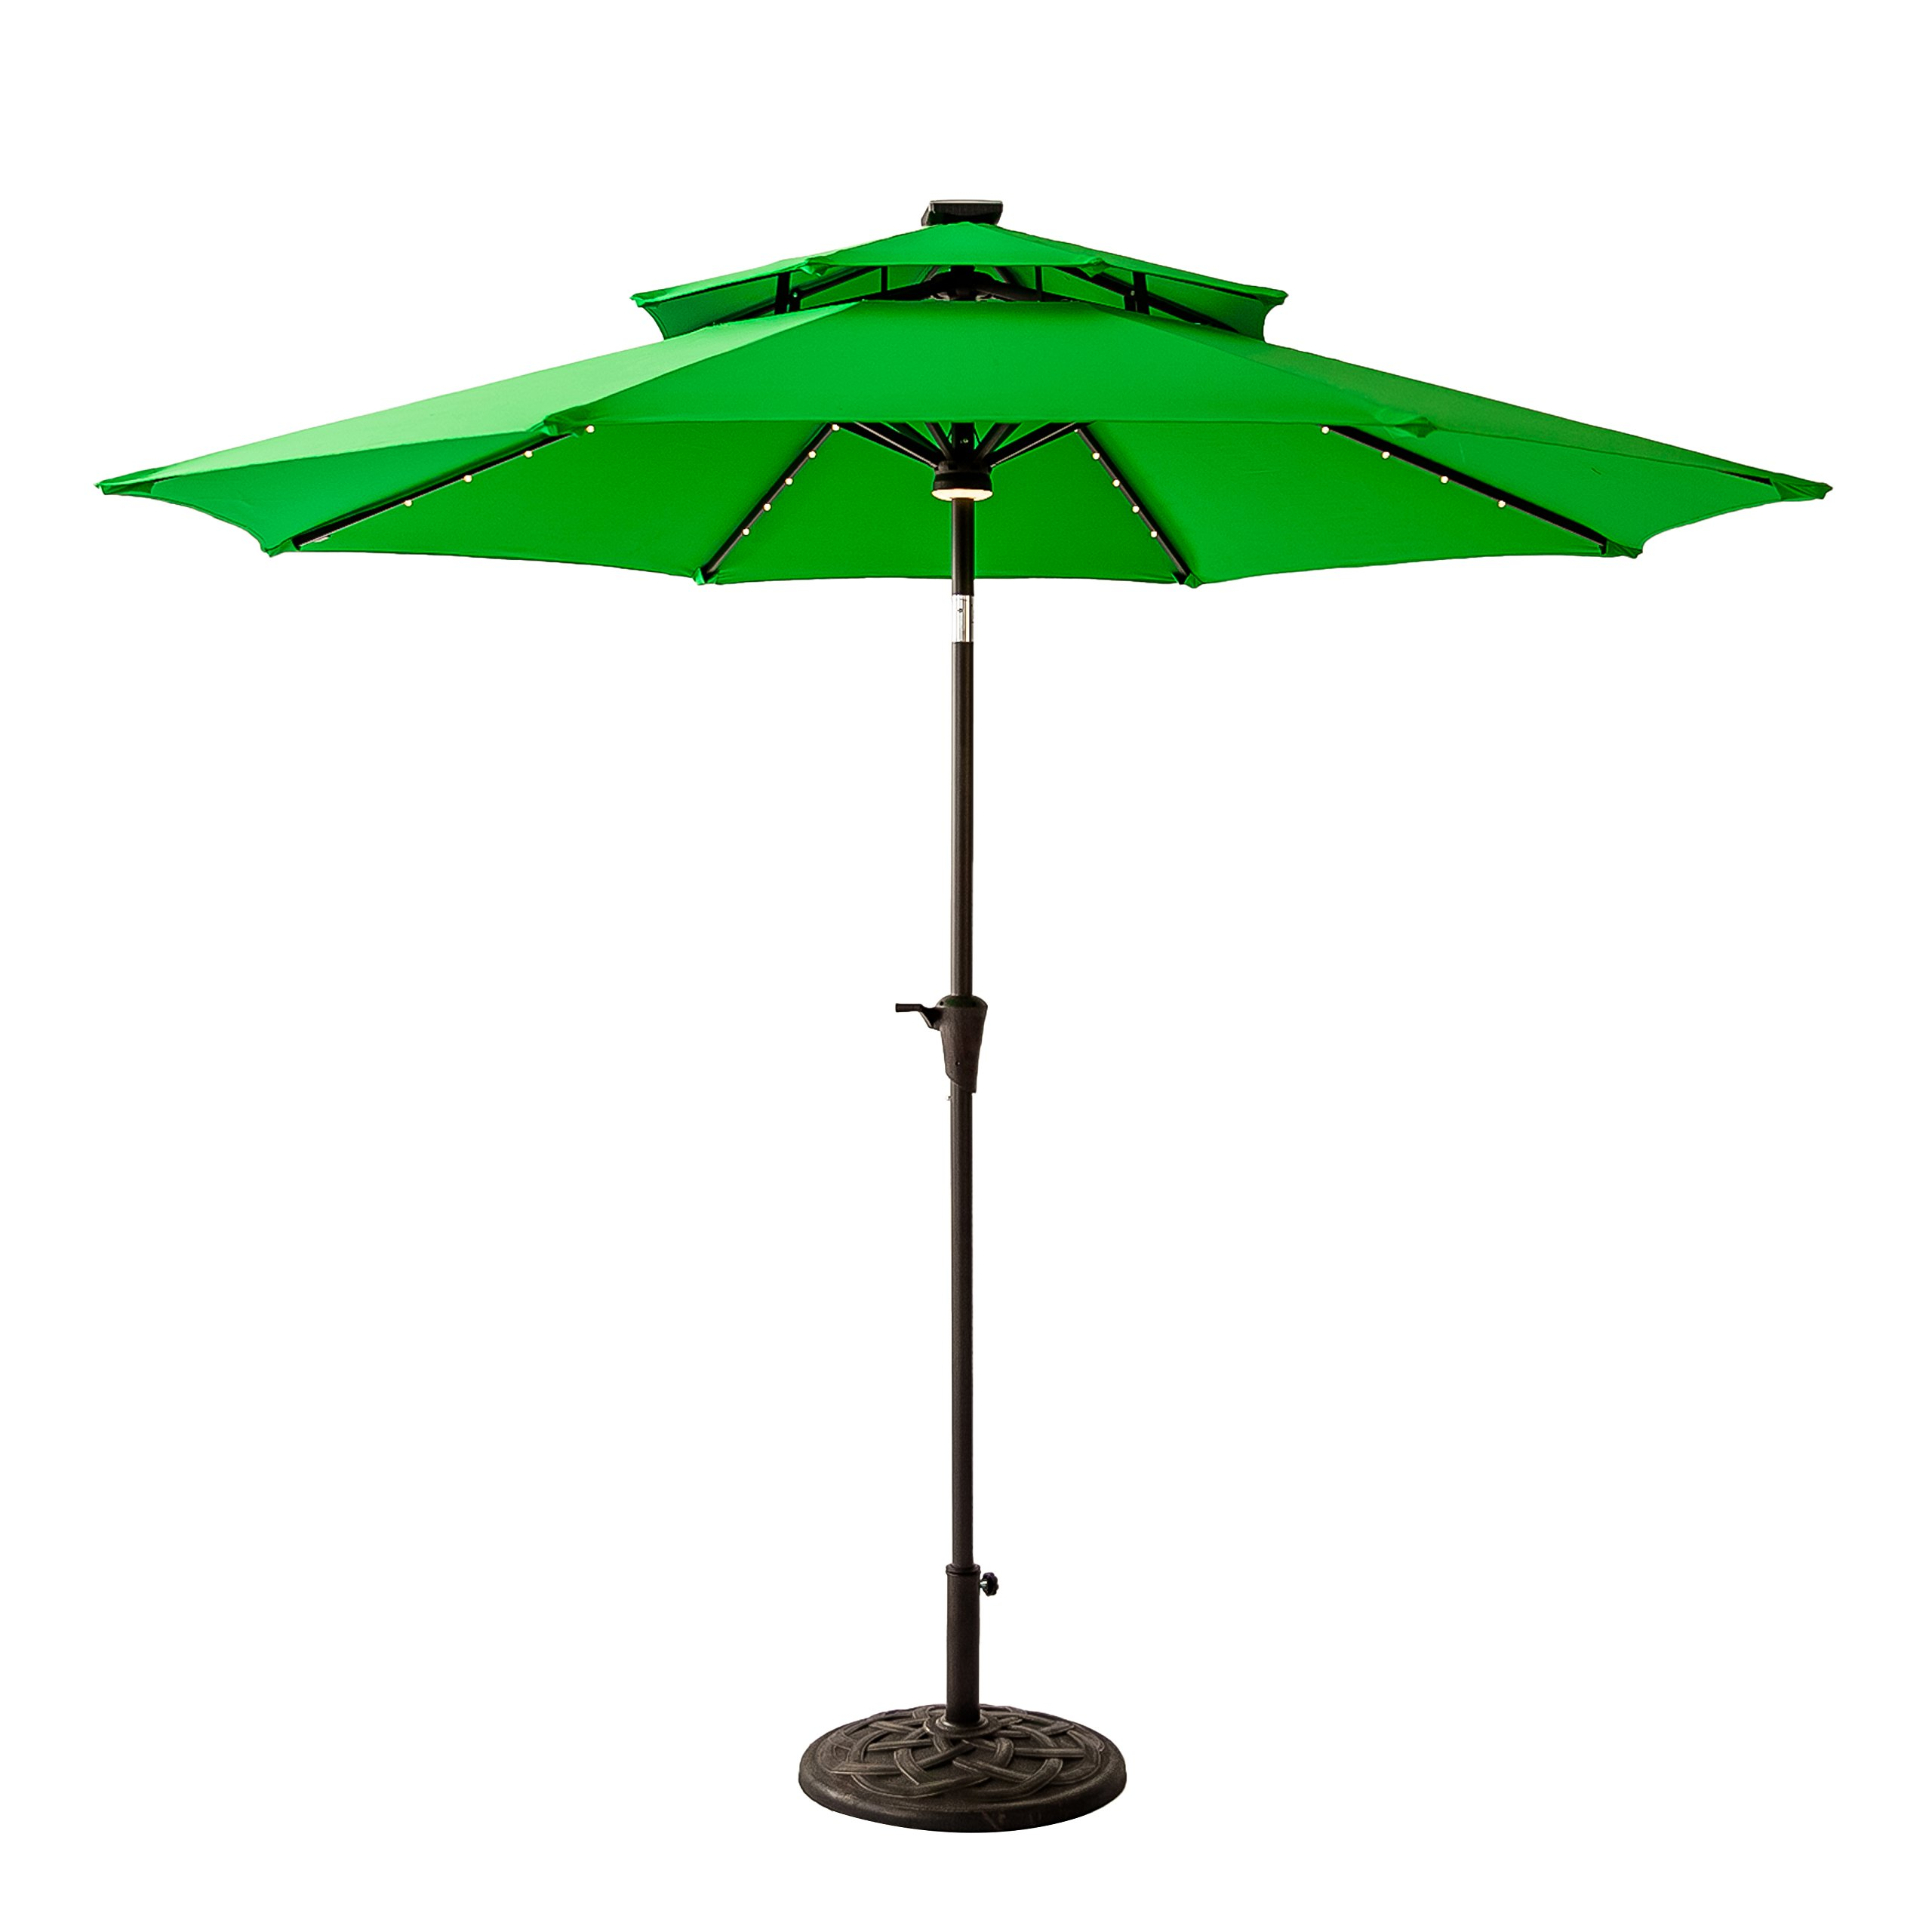 FLAME&SHADE 9 foot Solar Power LED Lights Double Top Outdoor Patio Market Umbrella with Crank Lift, Push Button Tilt, Apple Green